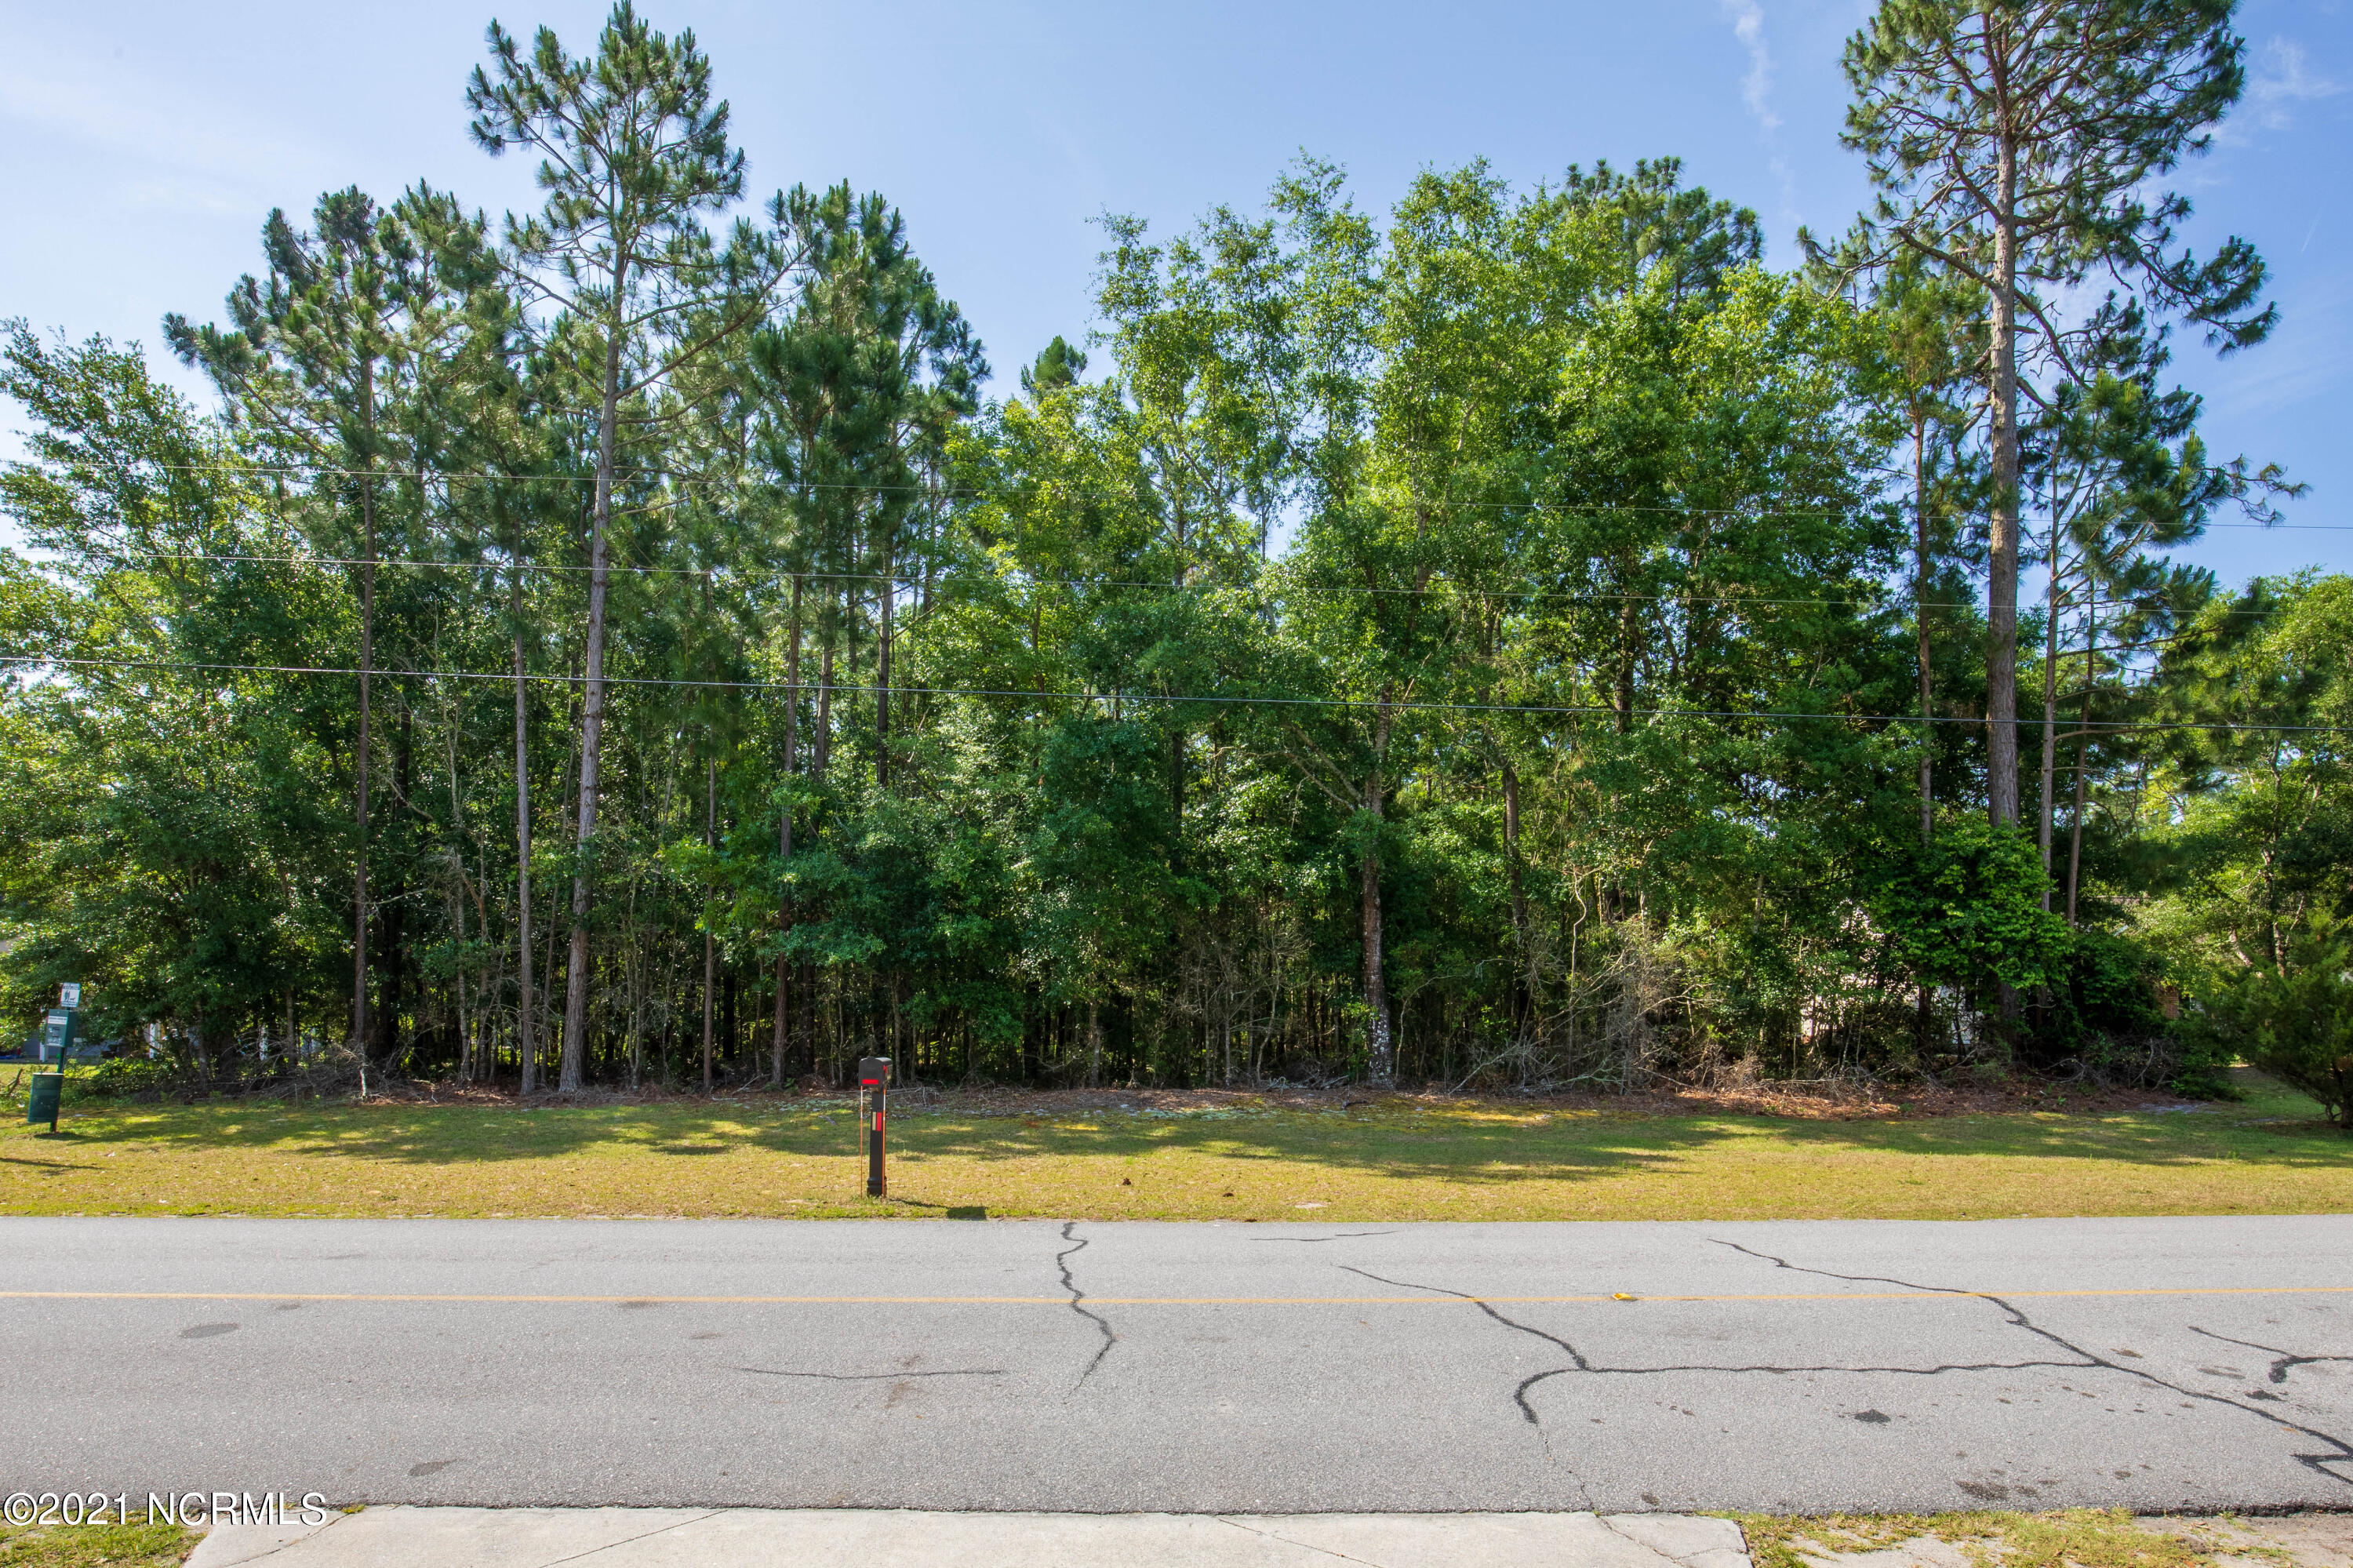 Welcome to Chadwick Shores! This lot offers the perfect spot to build your dream home! Nestled in this gated community with a day dock, picnic area, and playground.